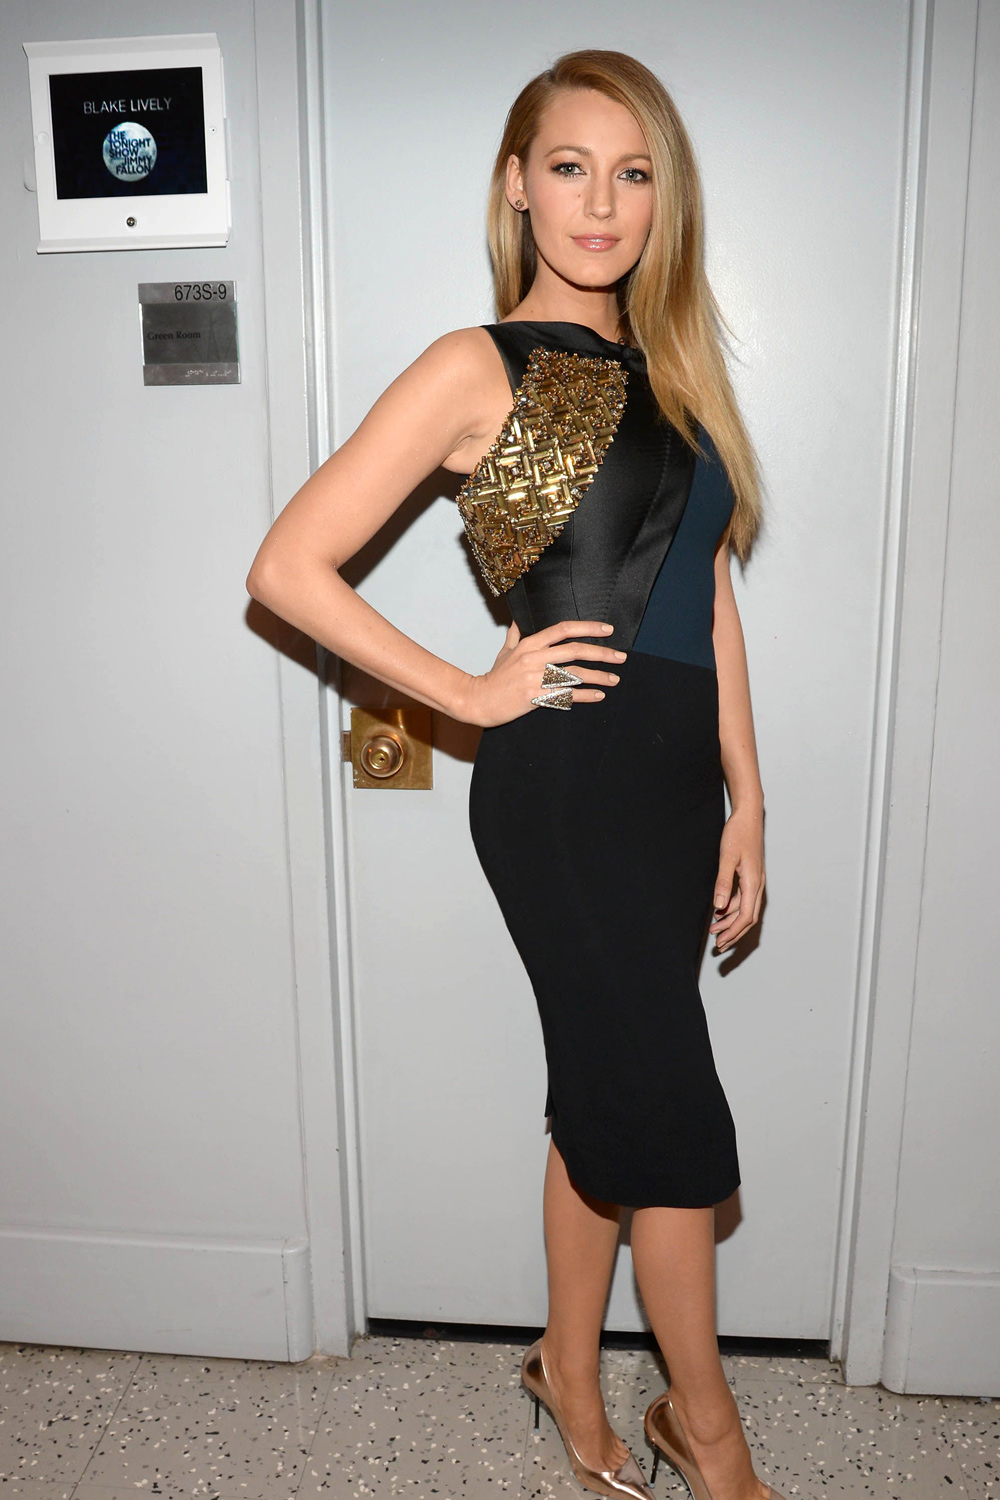 Style Icon Blake Lively works 10 different outfits and hairstyles in ...